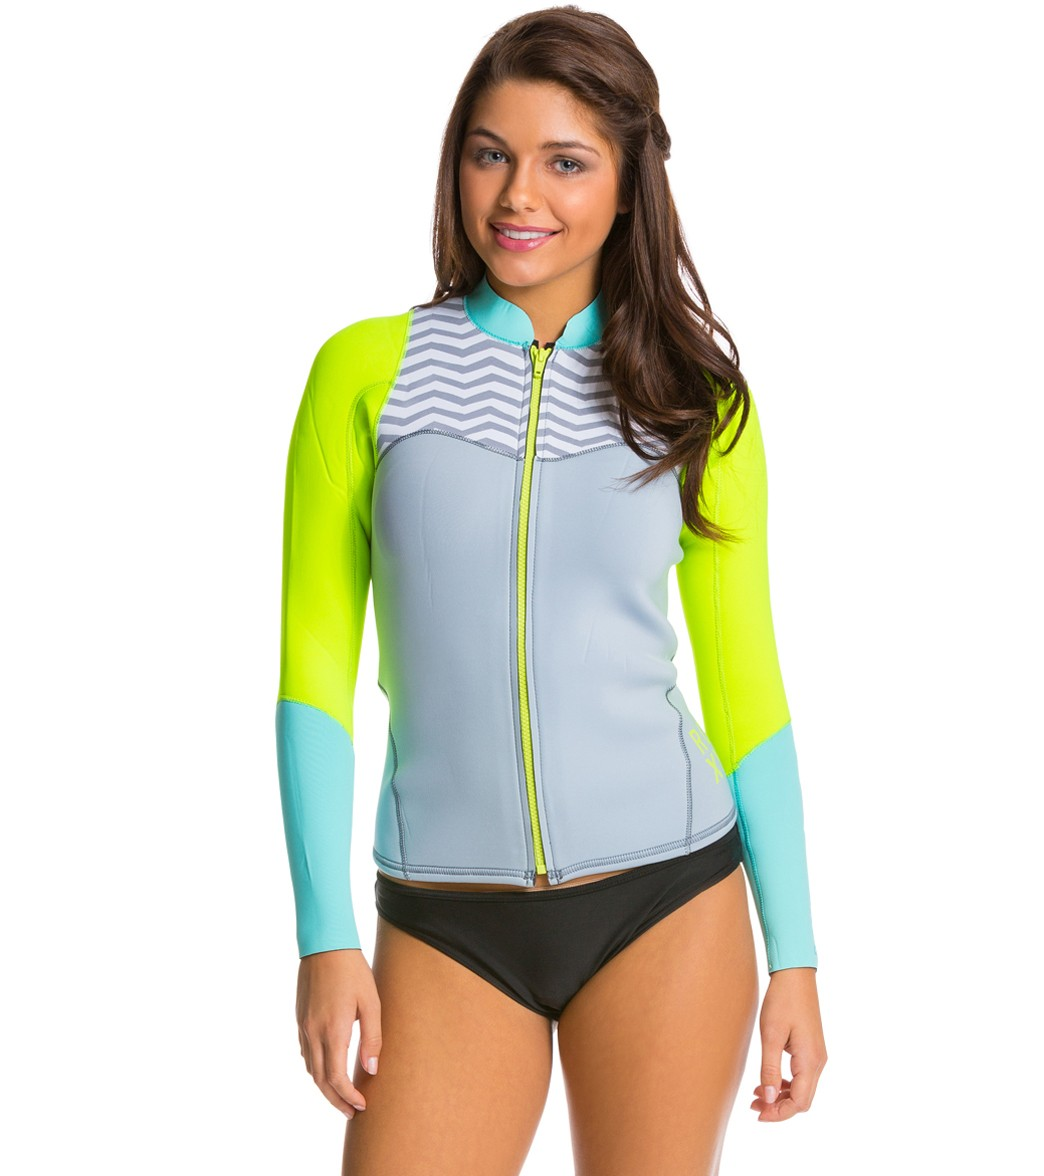 Roxy Women s 2mm XY Front Zip Long Sleeve Wetsuit Wetsuit Jacket ... a3c467348